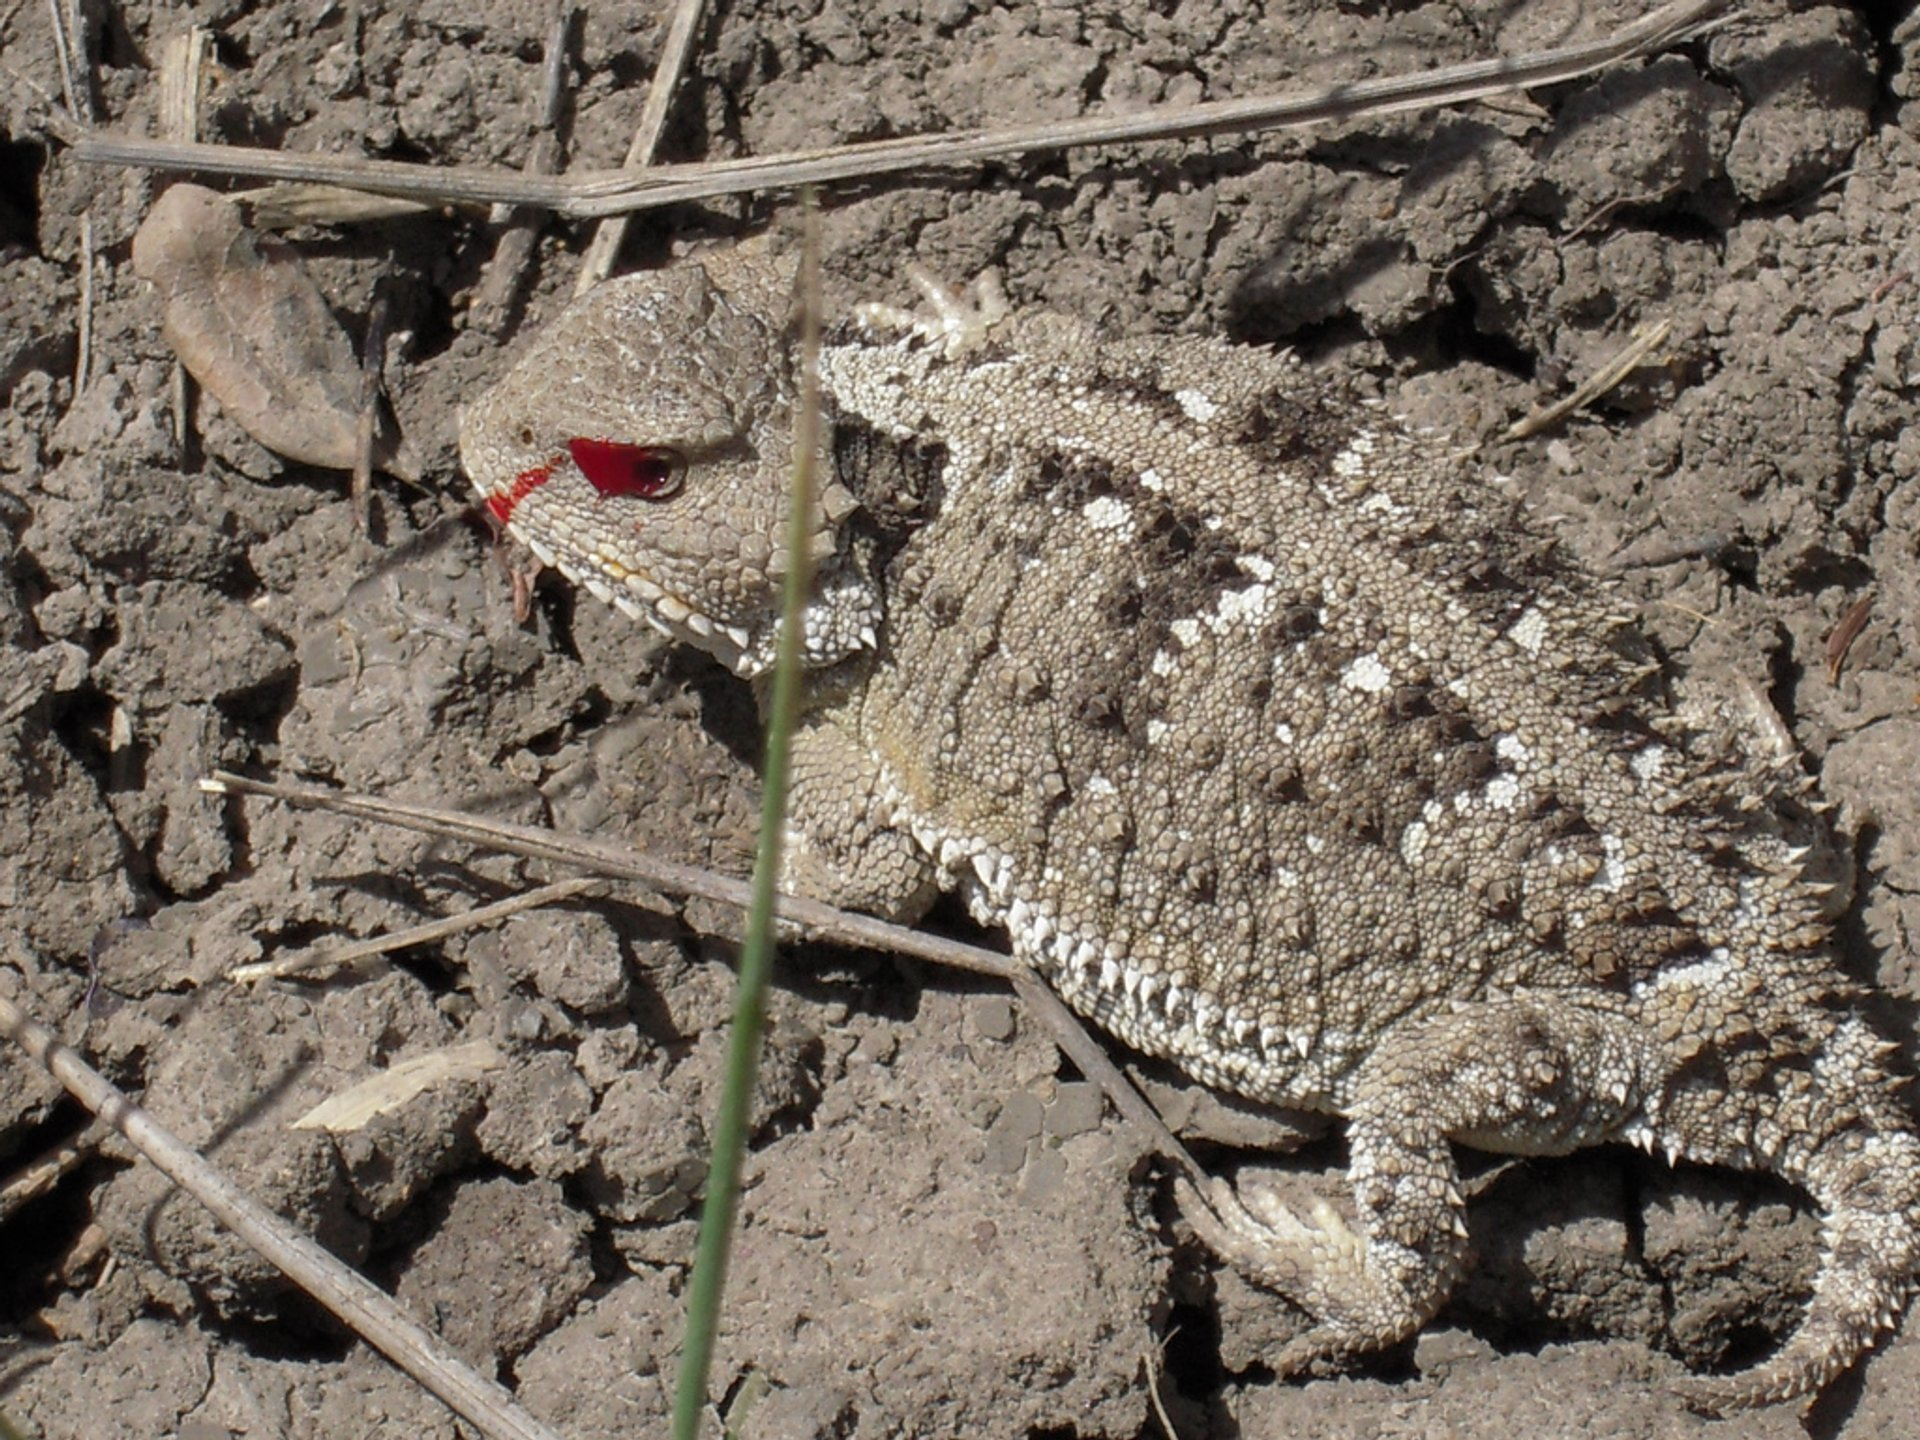 Blood-Shooting Lizards in Arizona - Best Season 2019